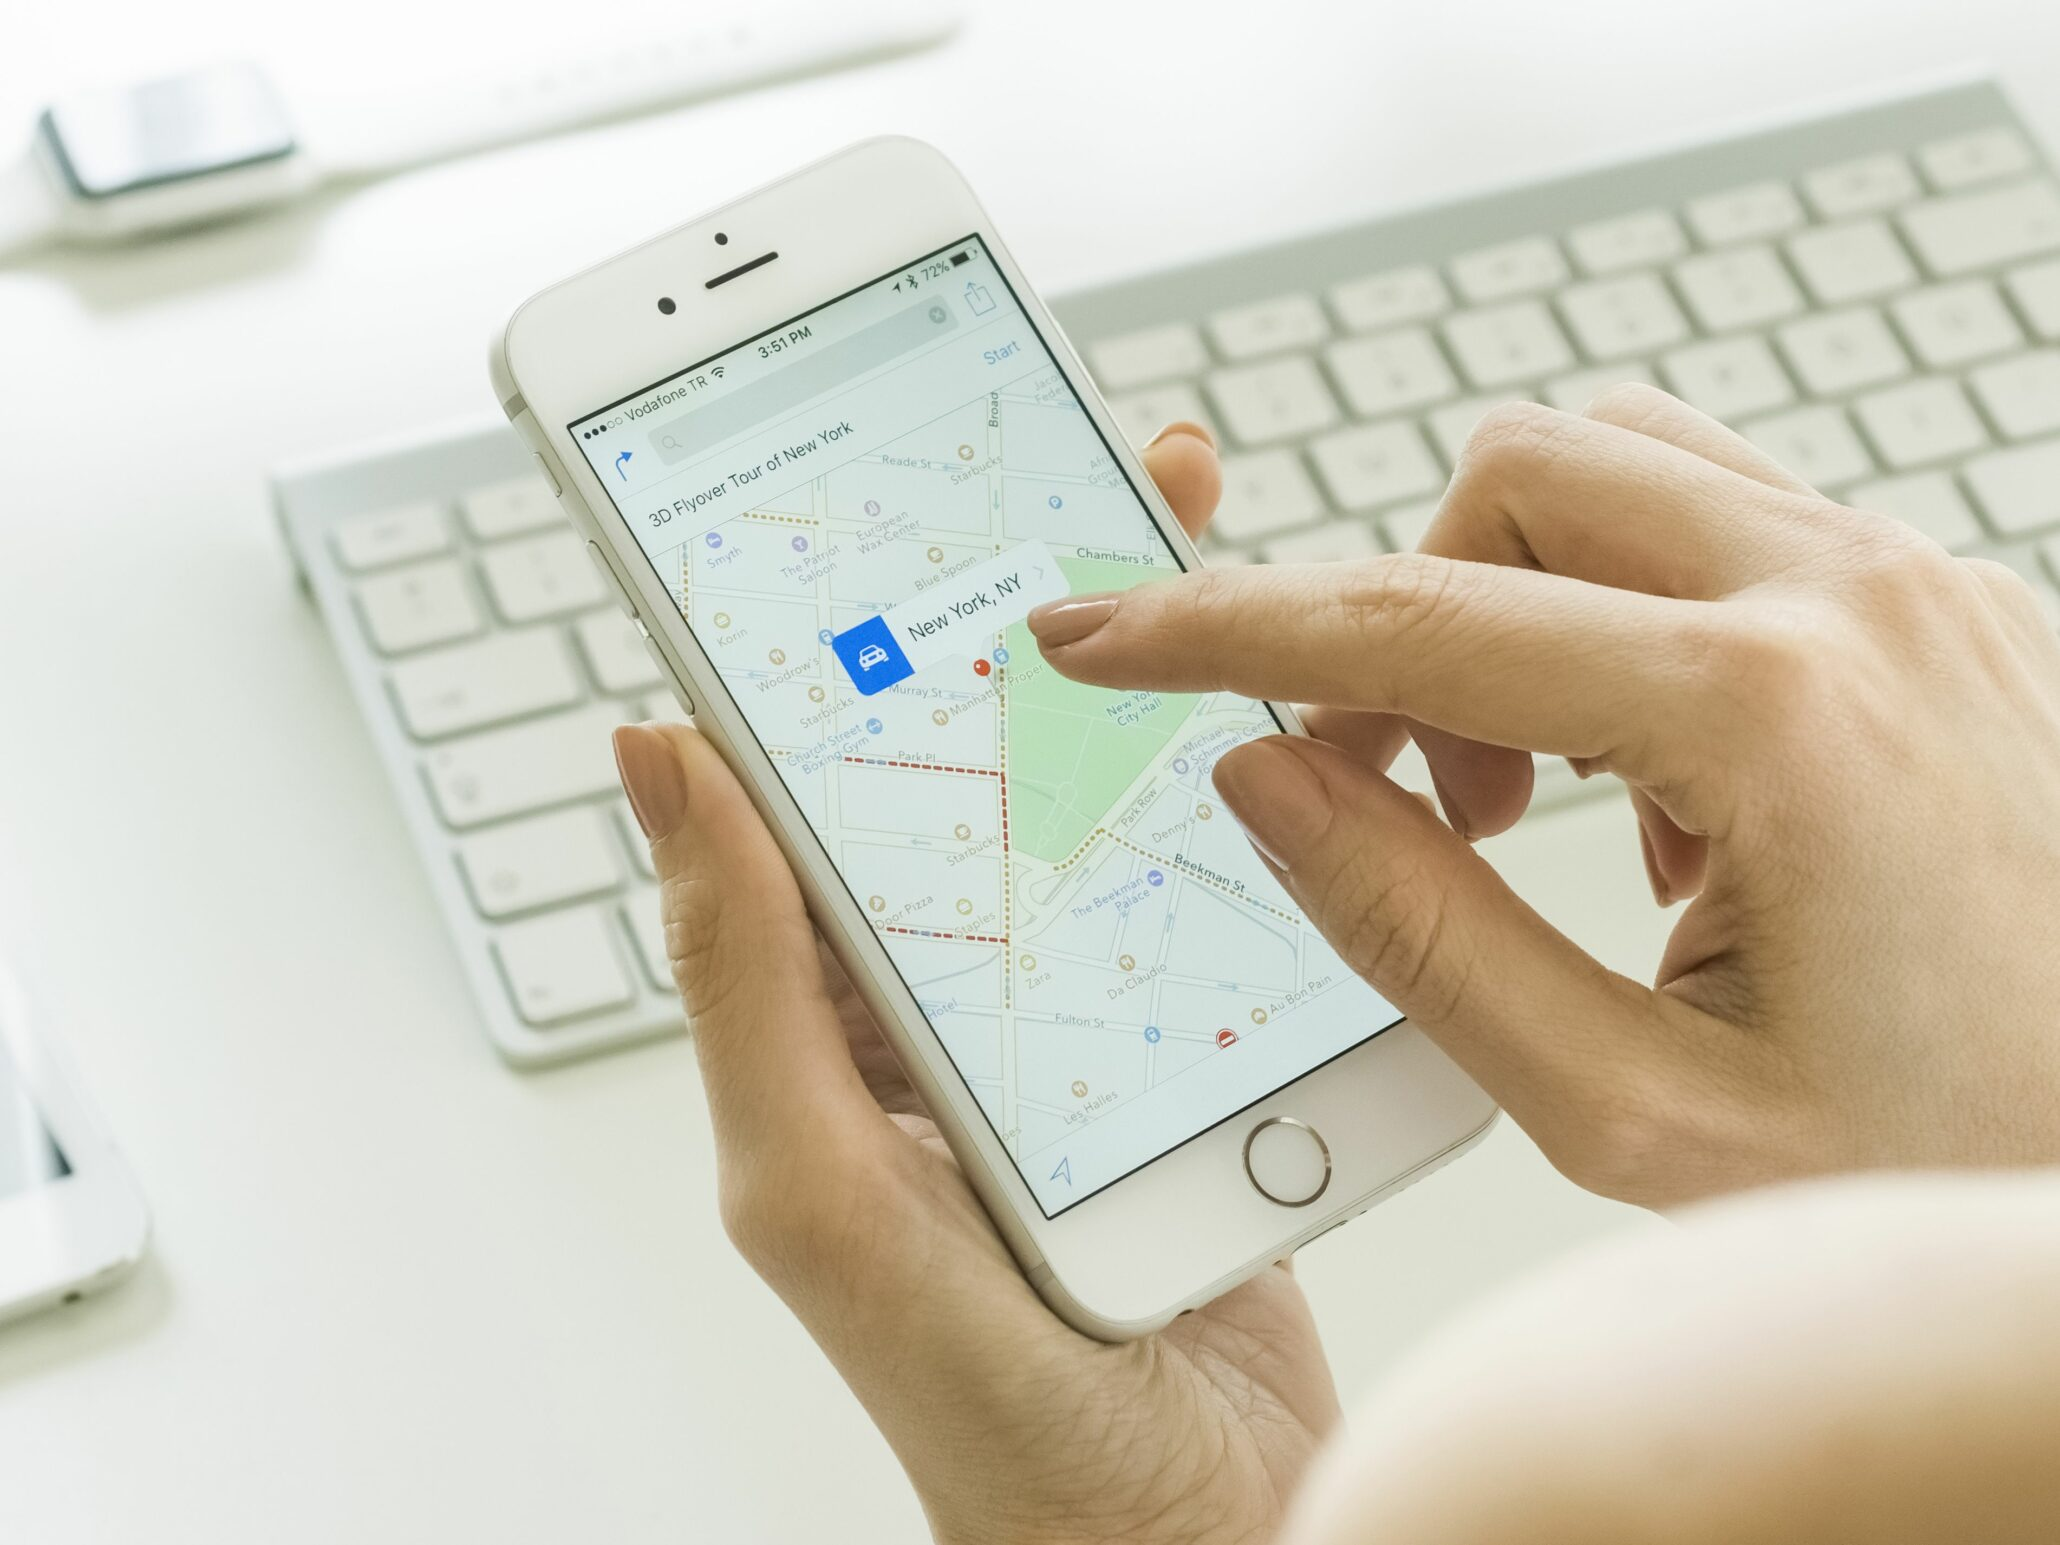 Phones Can Be Used to Track You Even with GPS & Location Turned Off